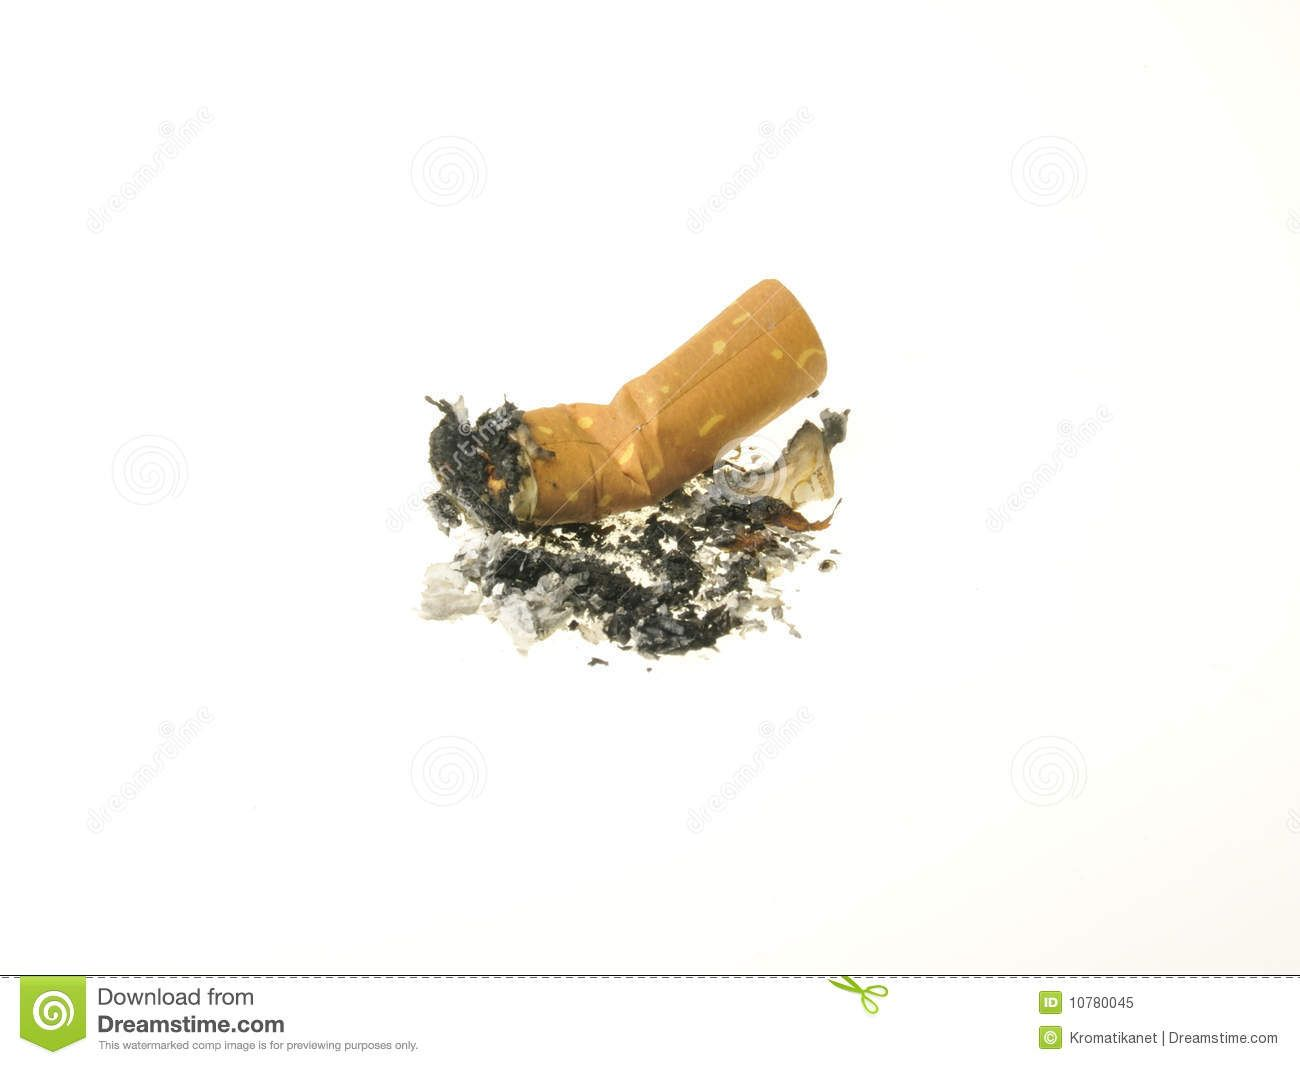 used Cigarettes | Used cigarette with burnt ashes.